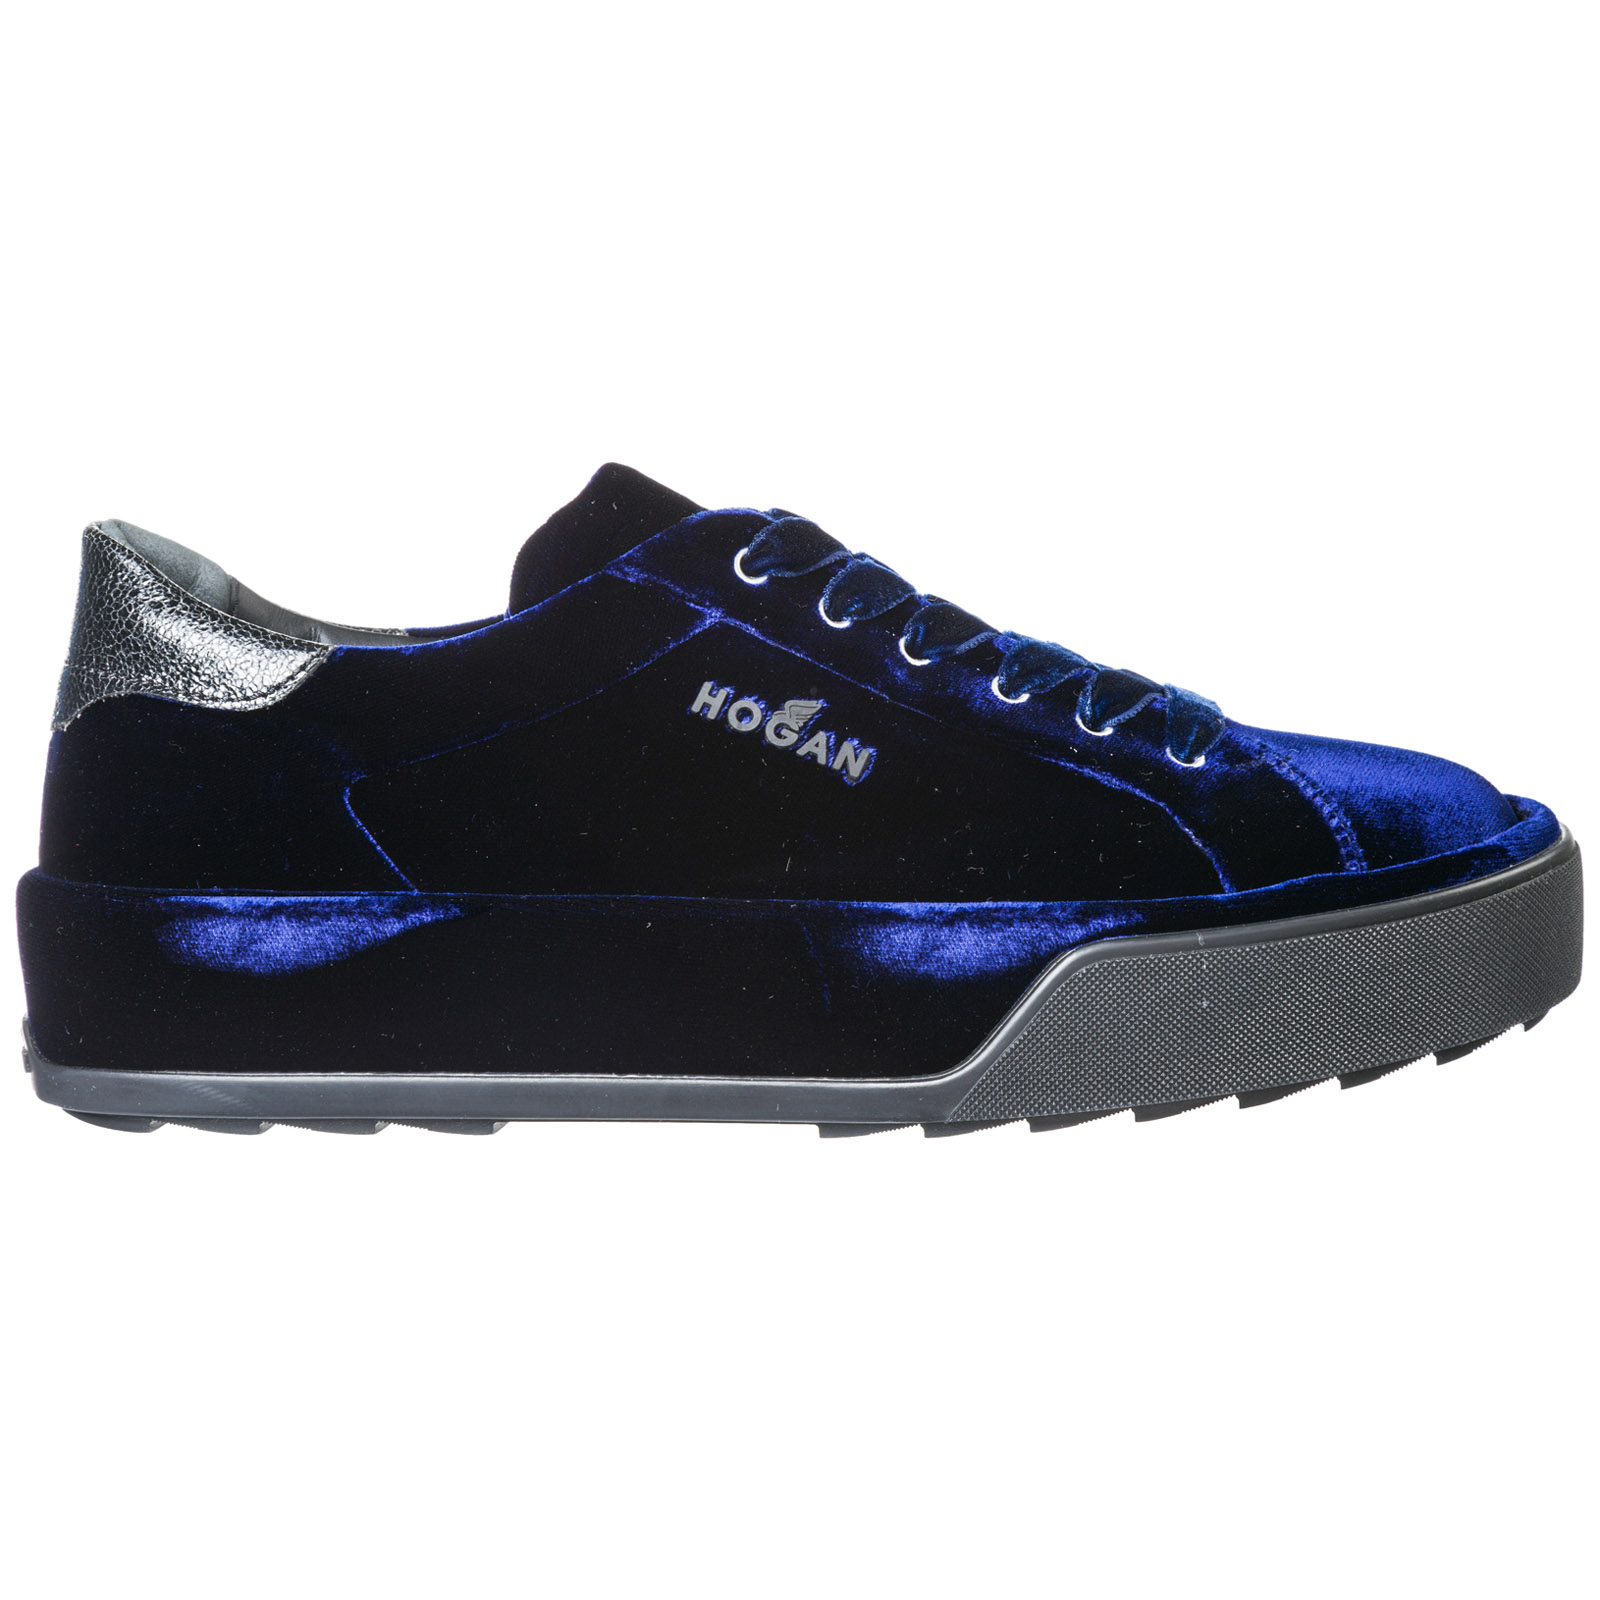 Women's shoes trainers sneakers  r320